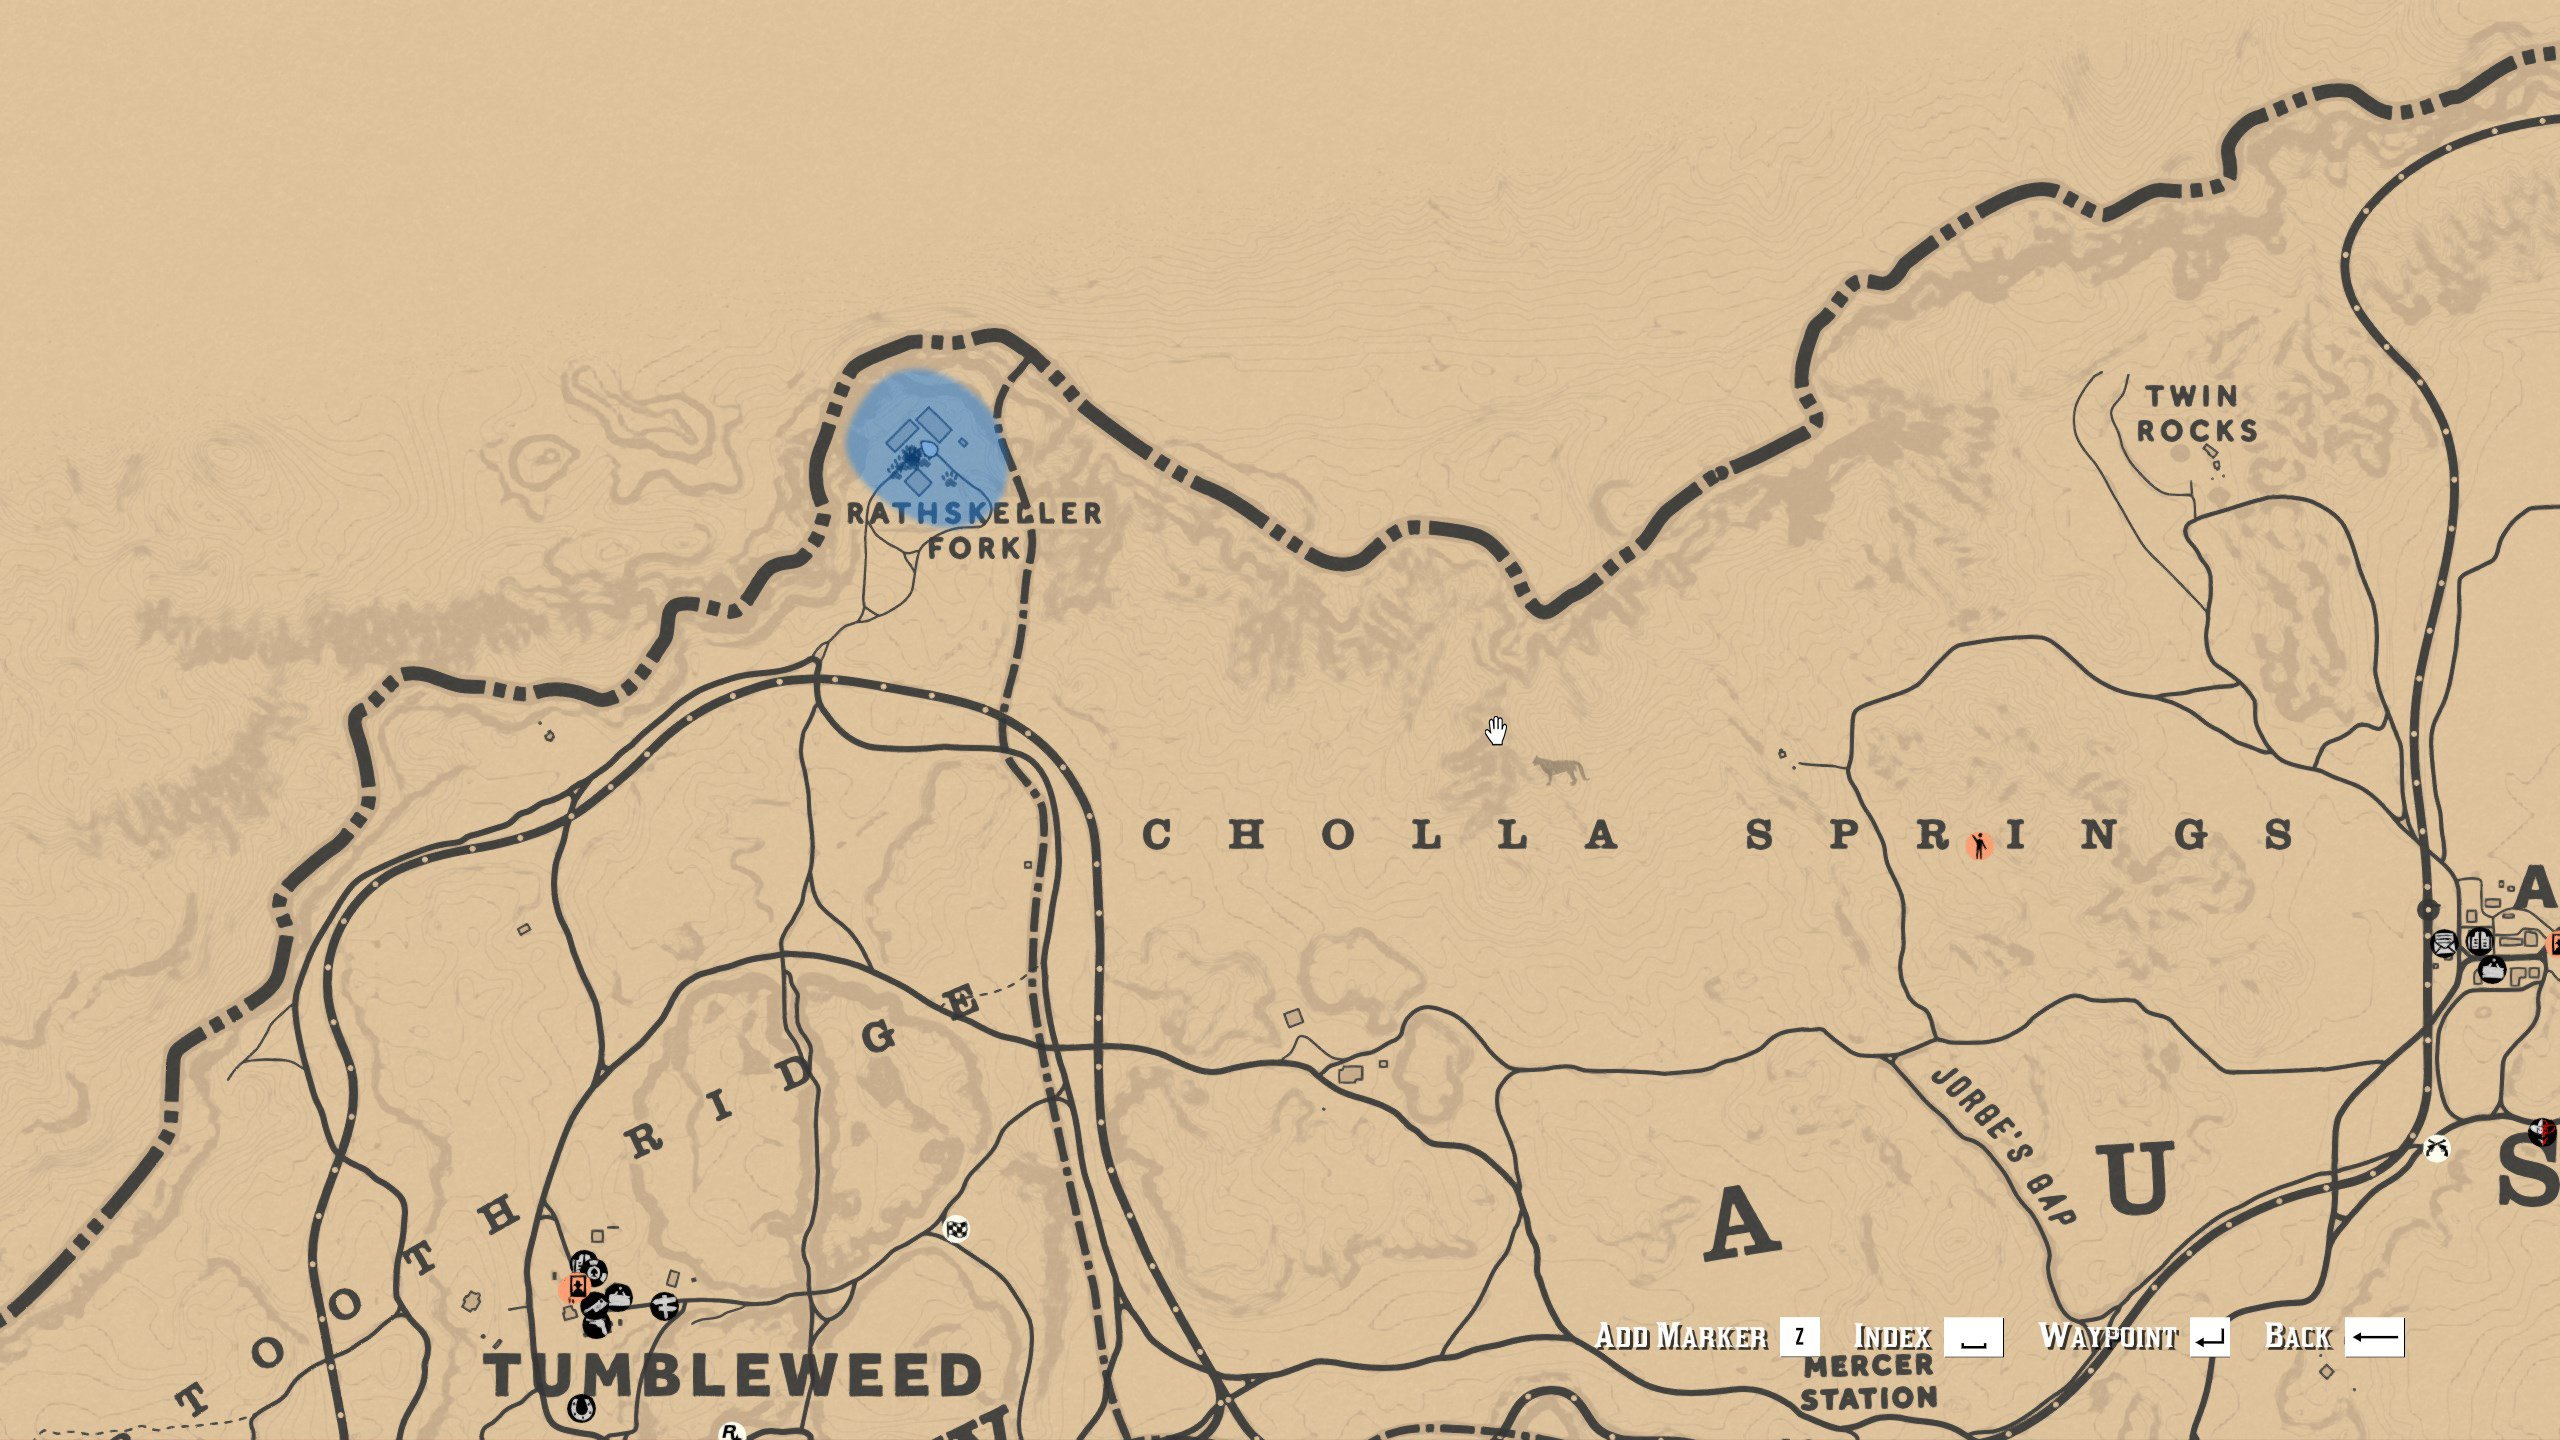 Chicken locations - Red Dead Redemption 2 - Rathskeller Fork